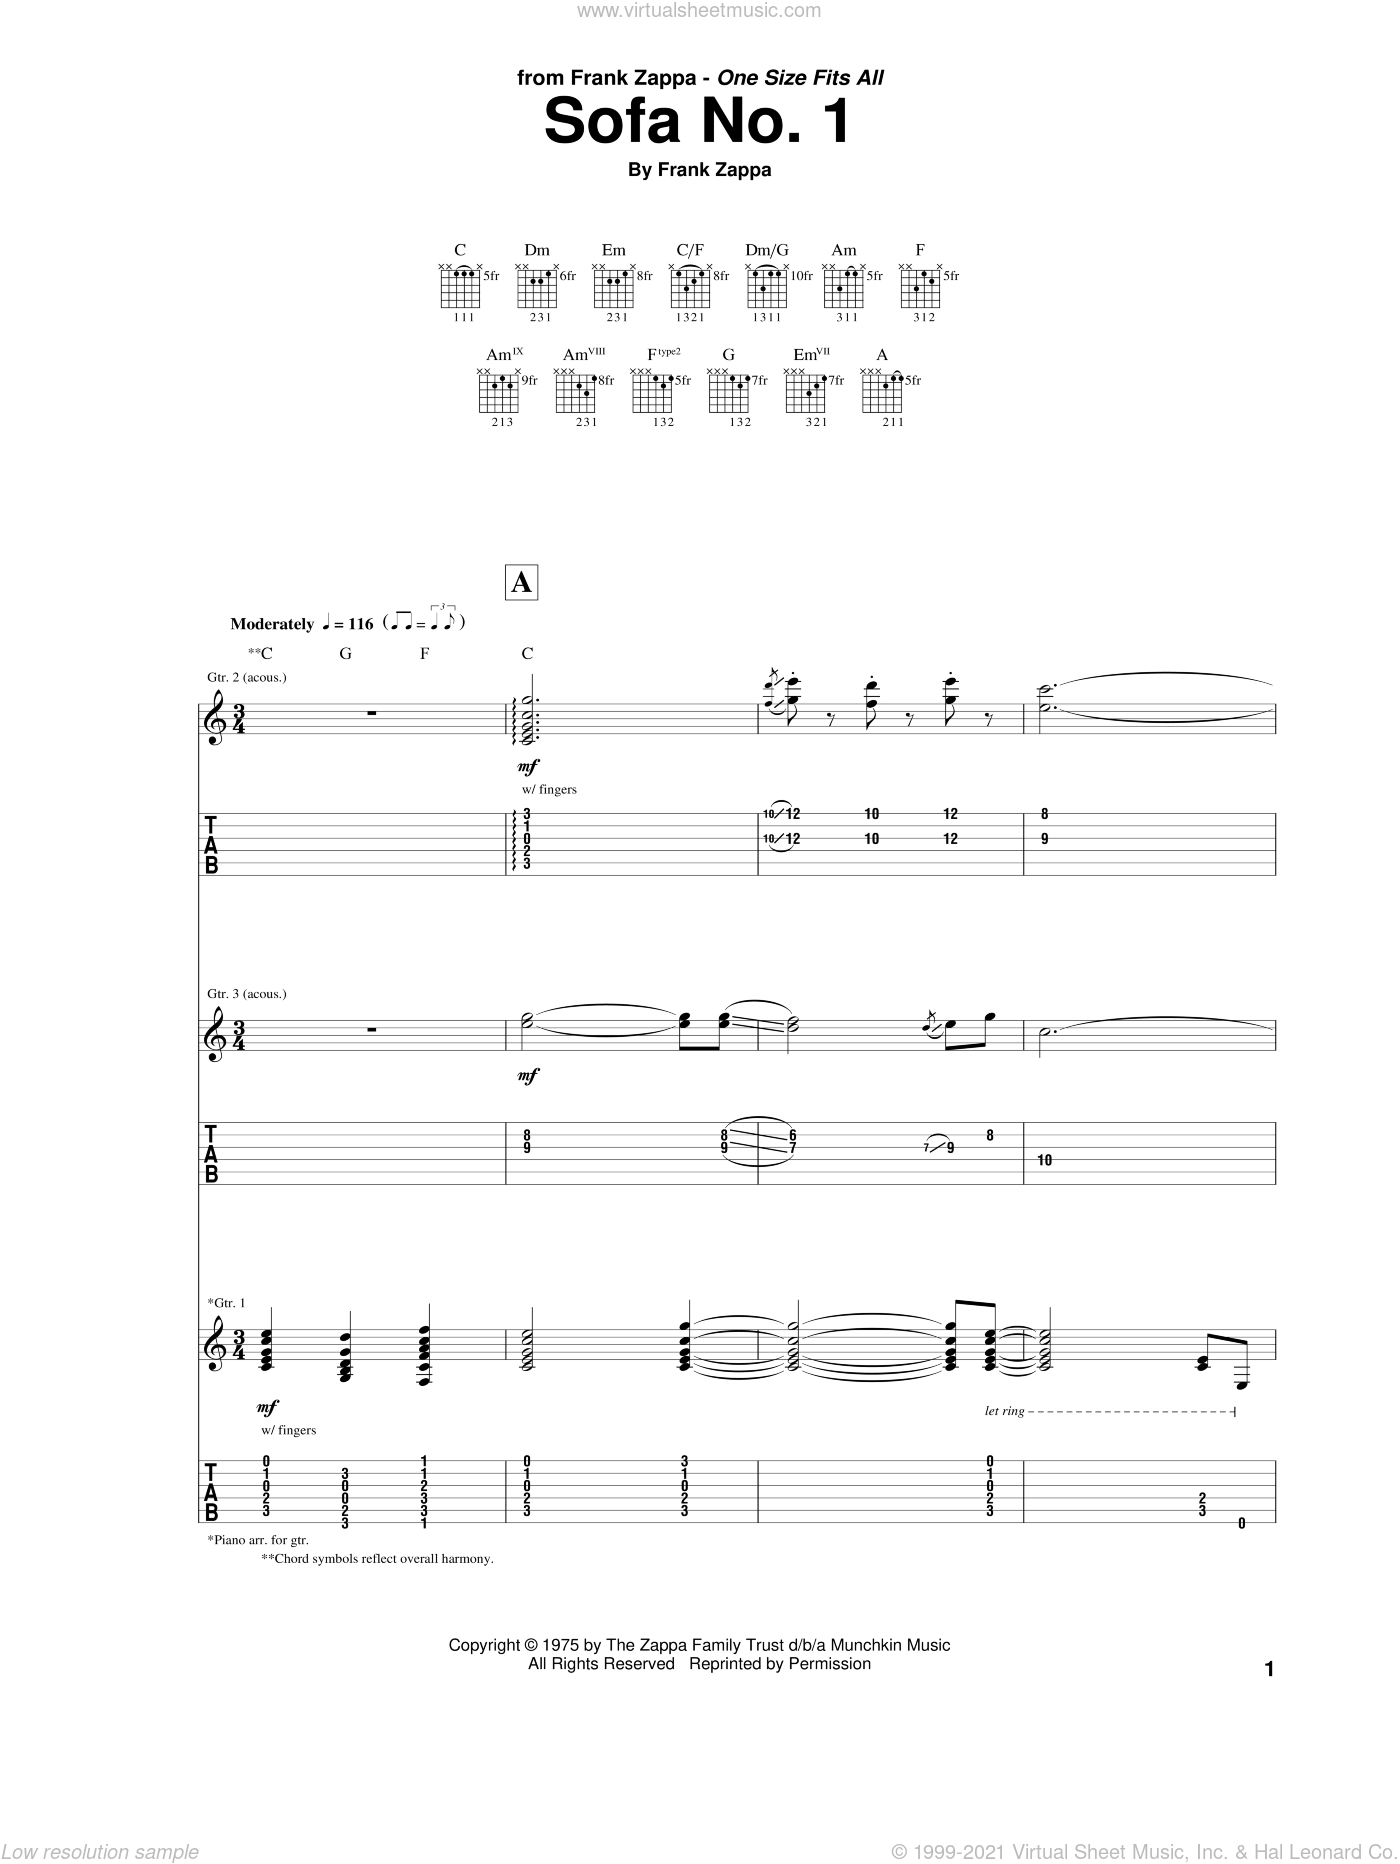 Sofa No. 1 sheet music for guitar (tablature) by Frank Zappa, intermediate